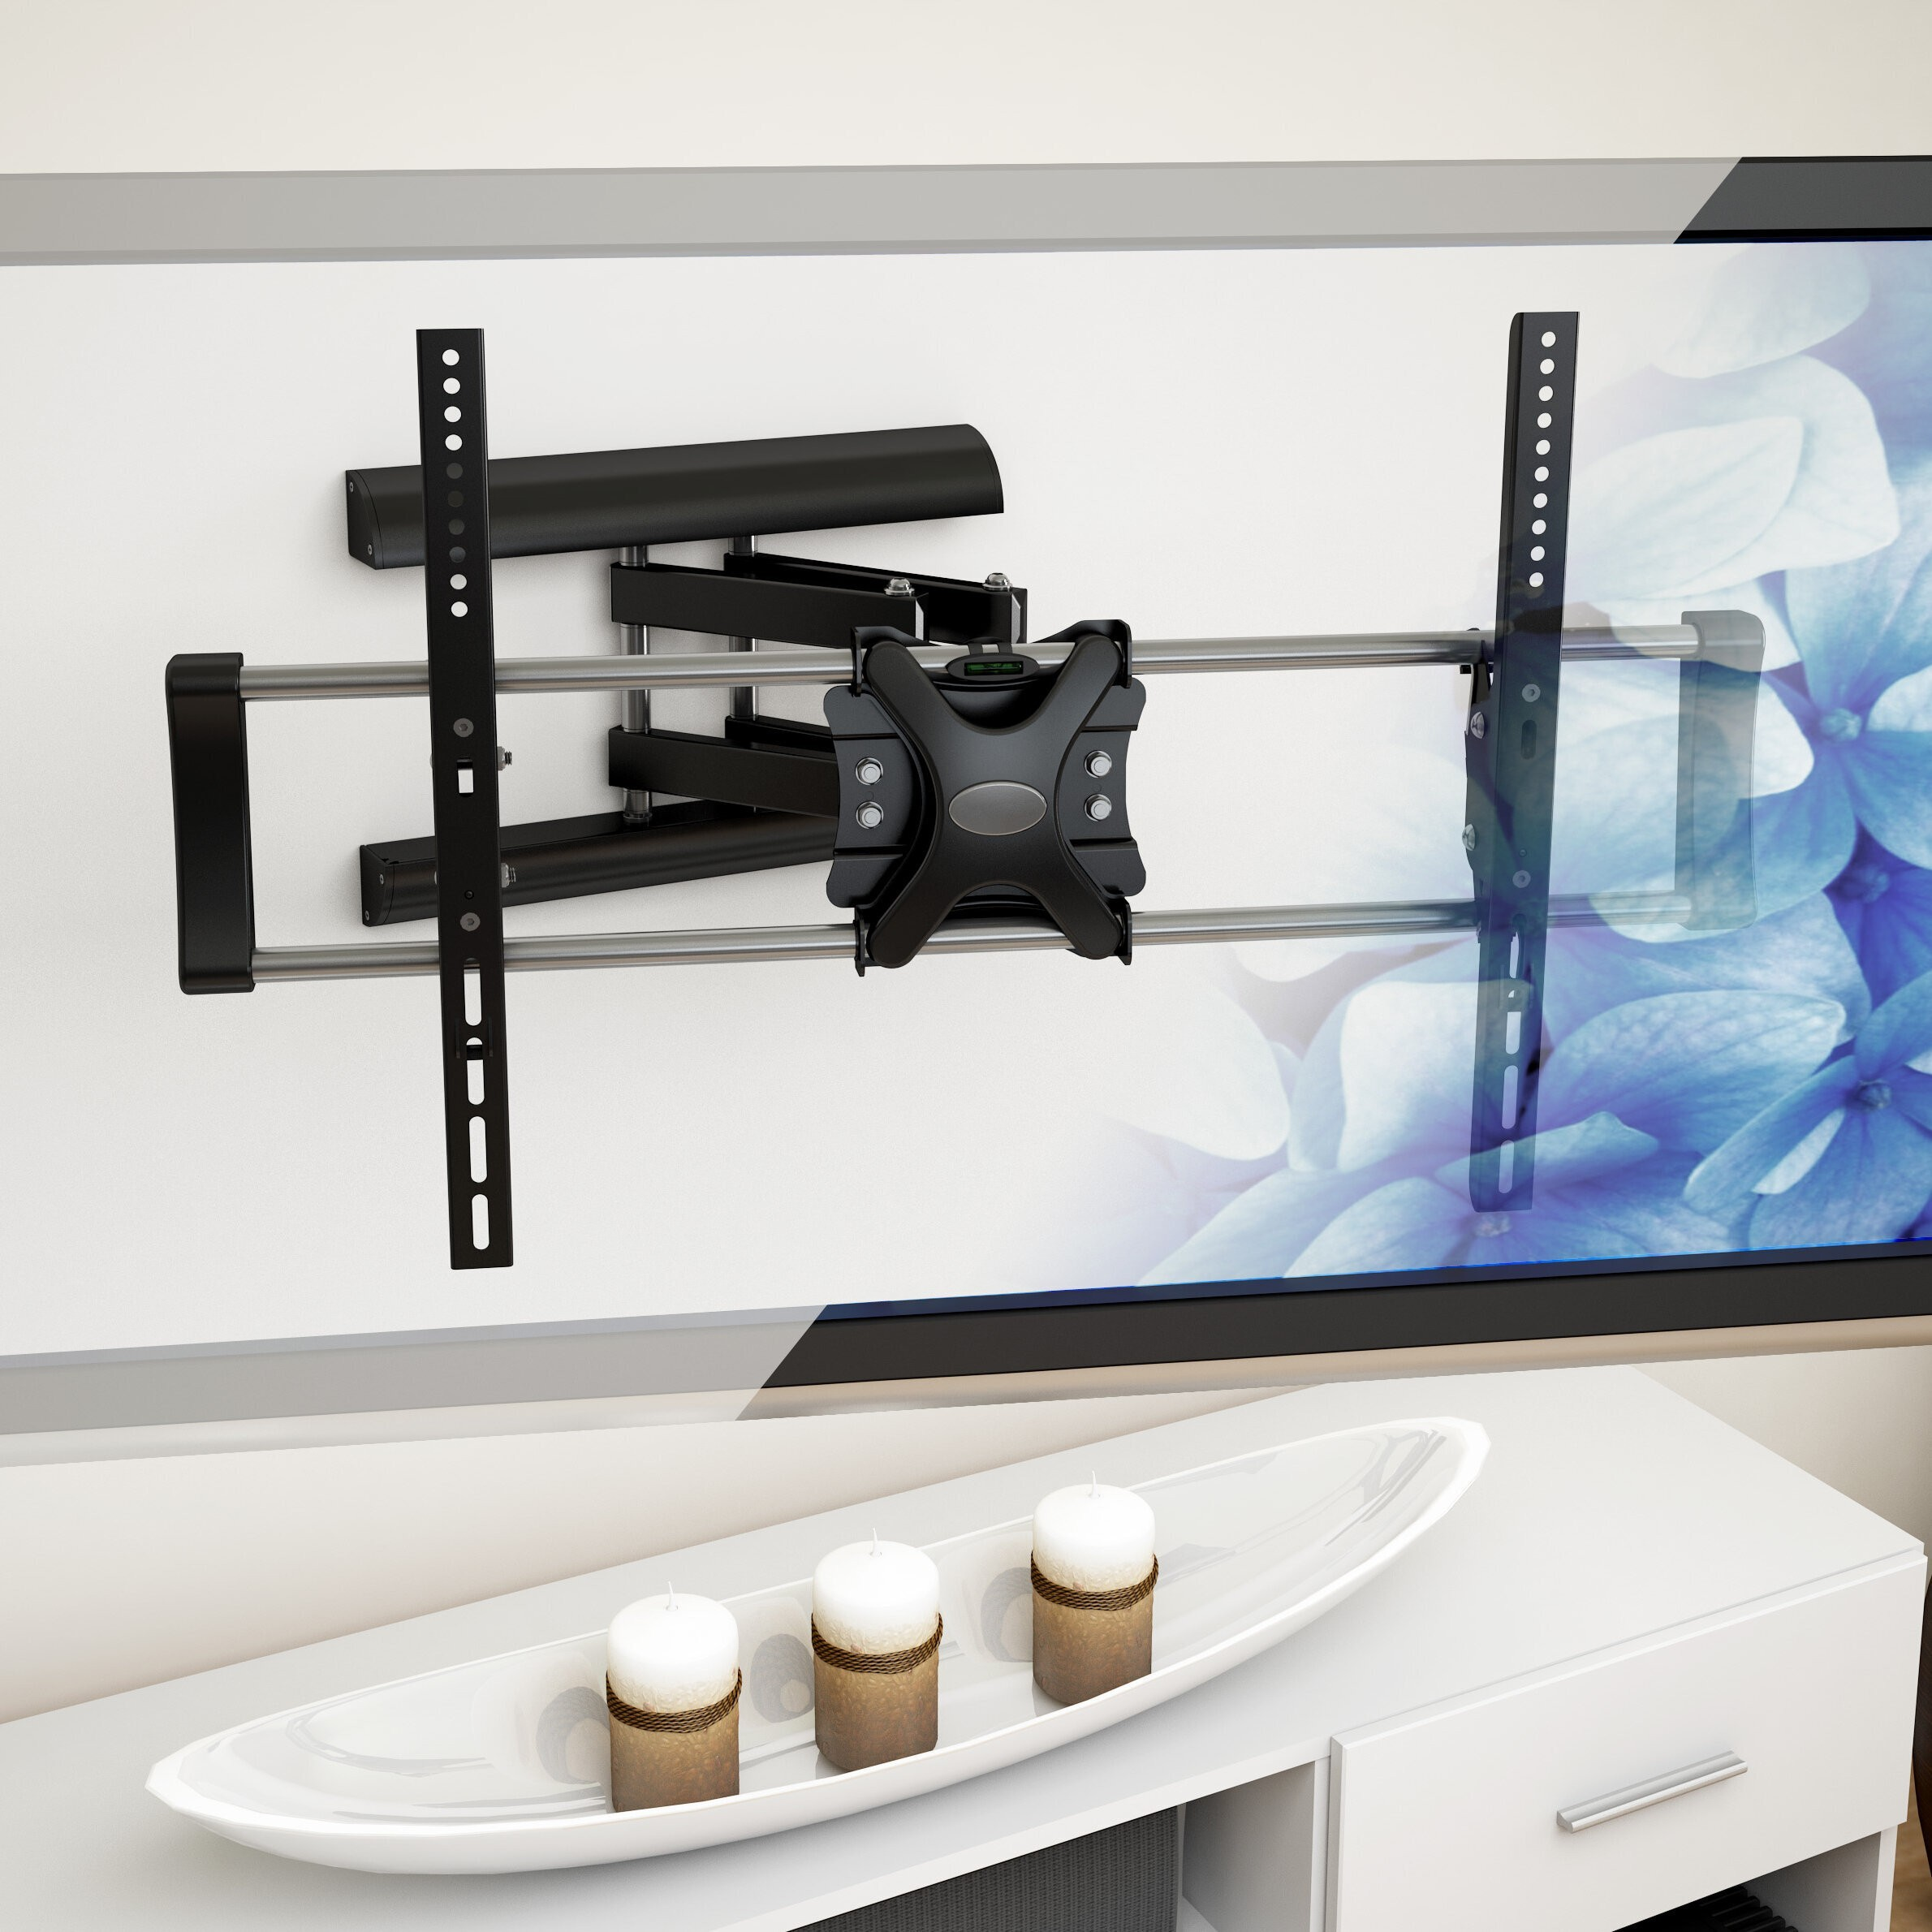 How To Choose A/V Component Shelving